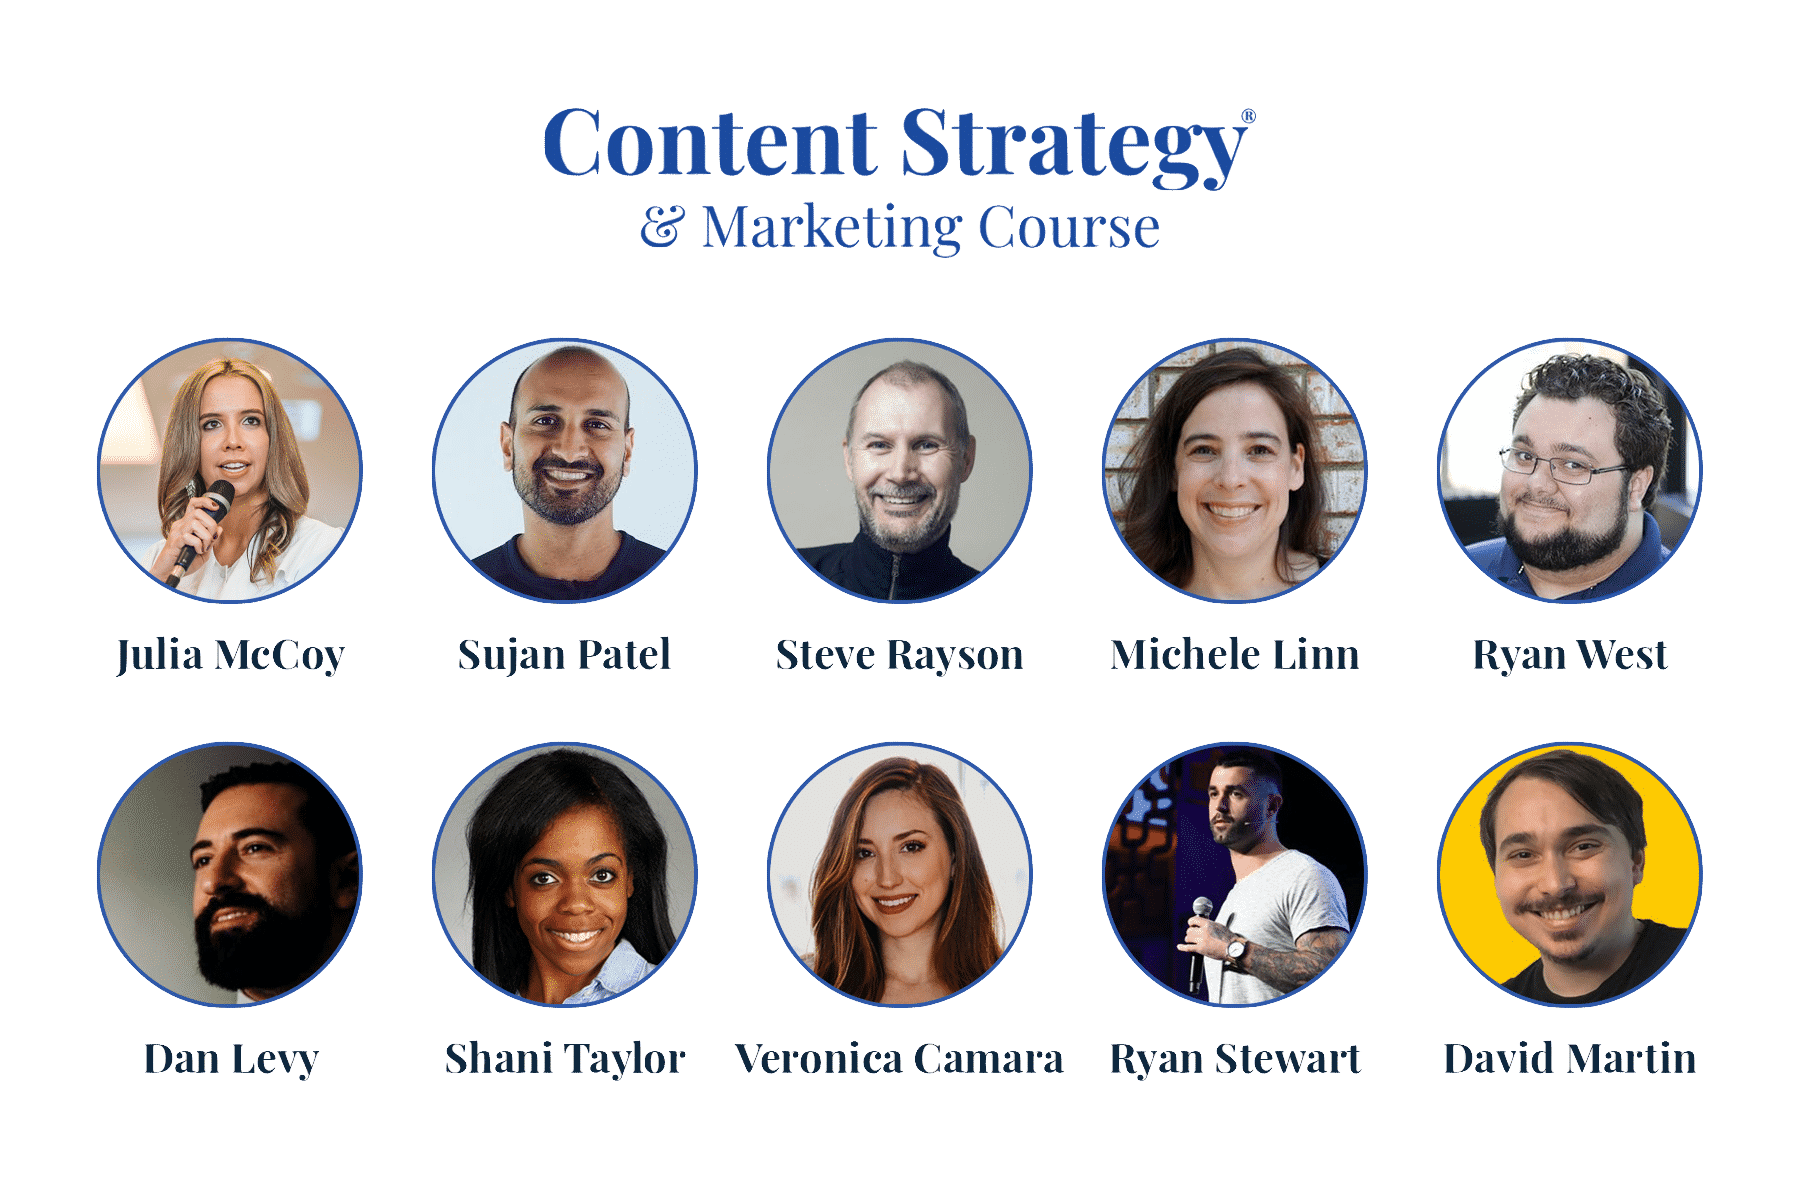 content strategy and marketing course instructors